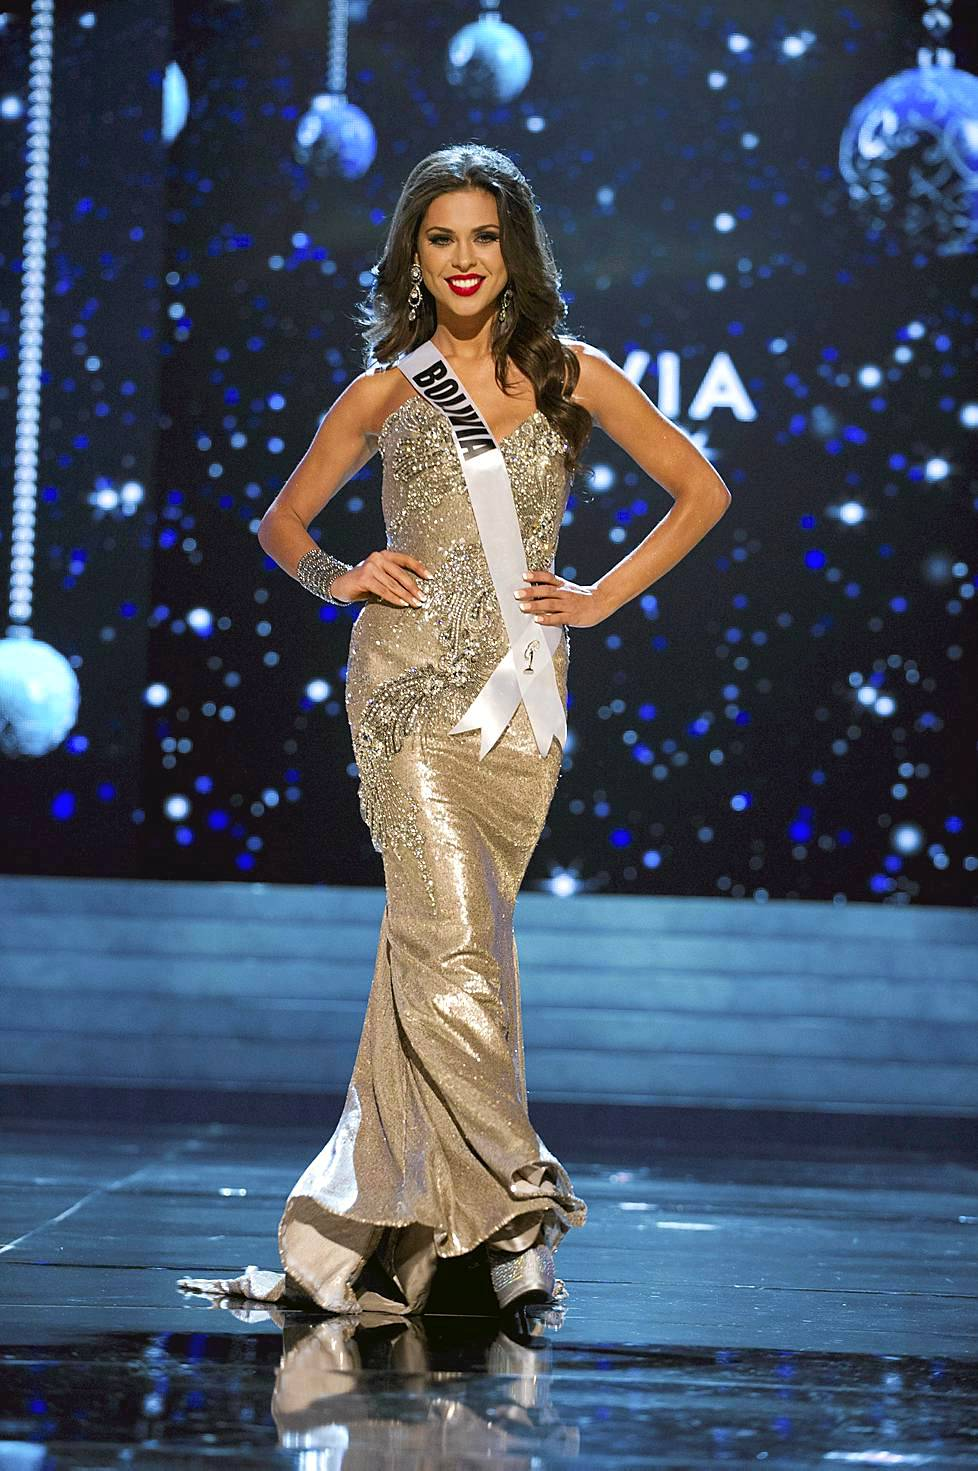 Miss Bolivia 2012 Yessica Mouton